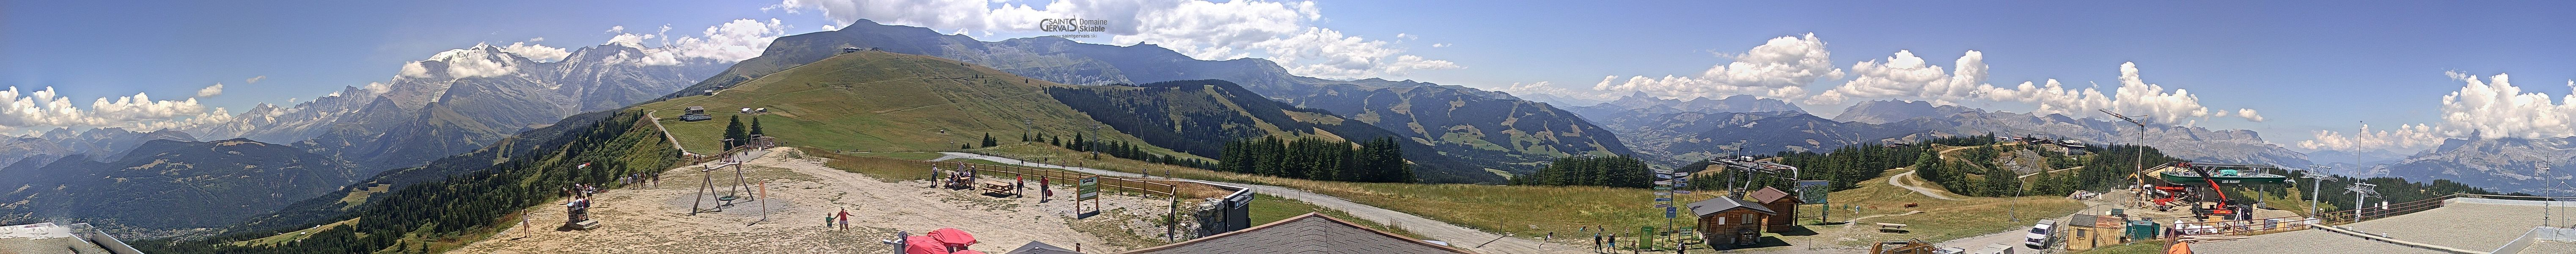 Mont d arbois bettex webcam